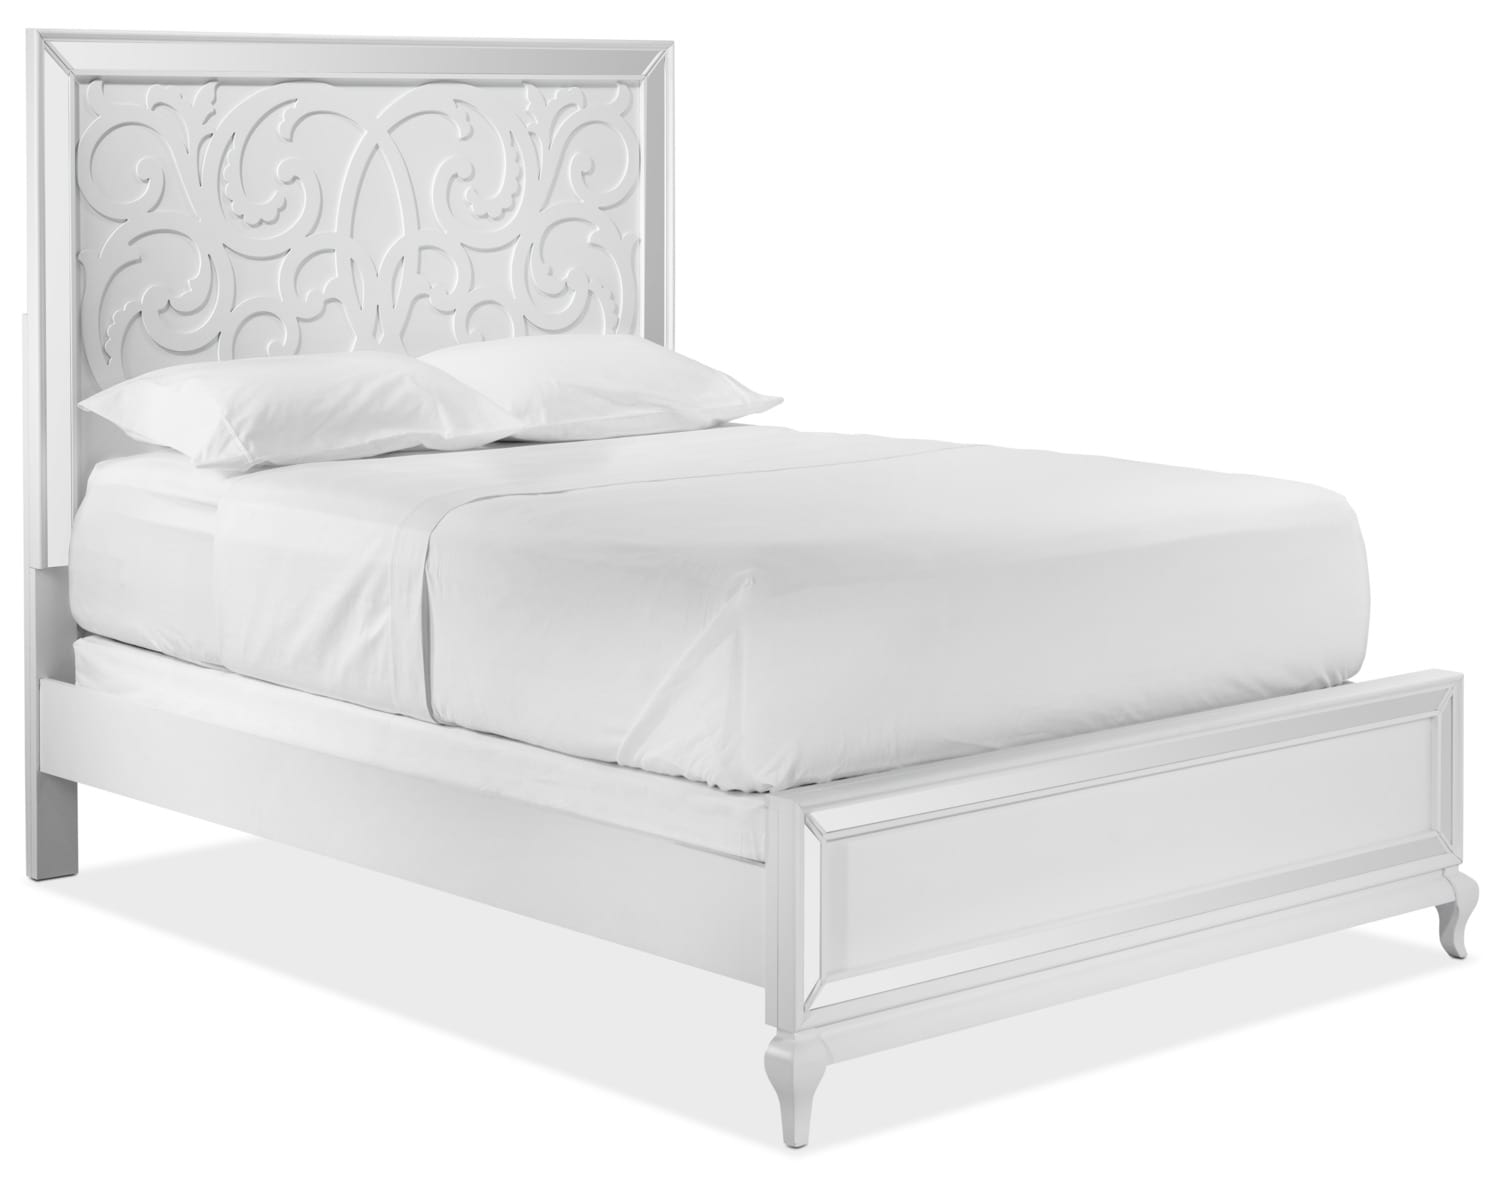 Bedroom Furniture - Arctic Ice King Bed - White